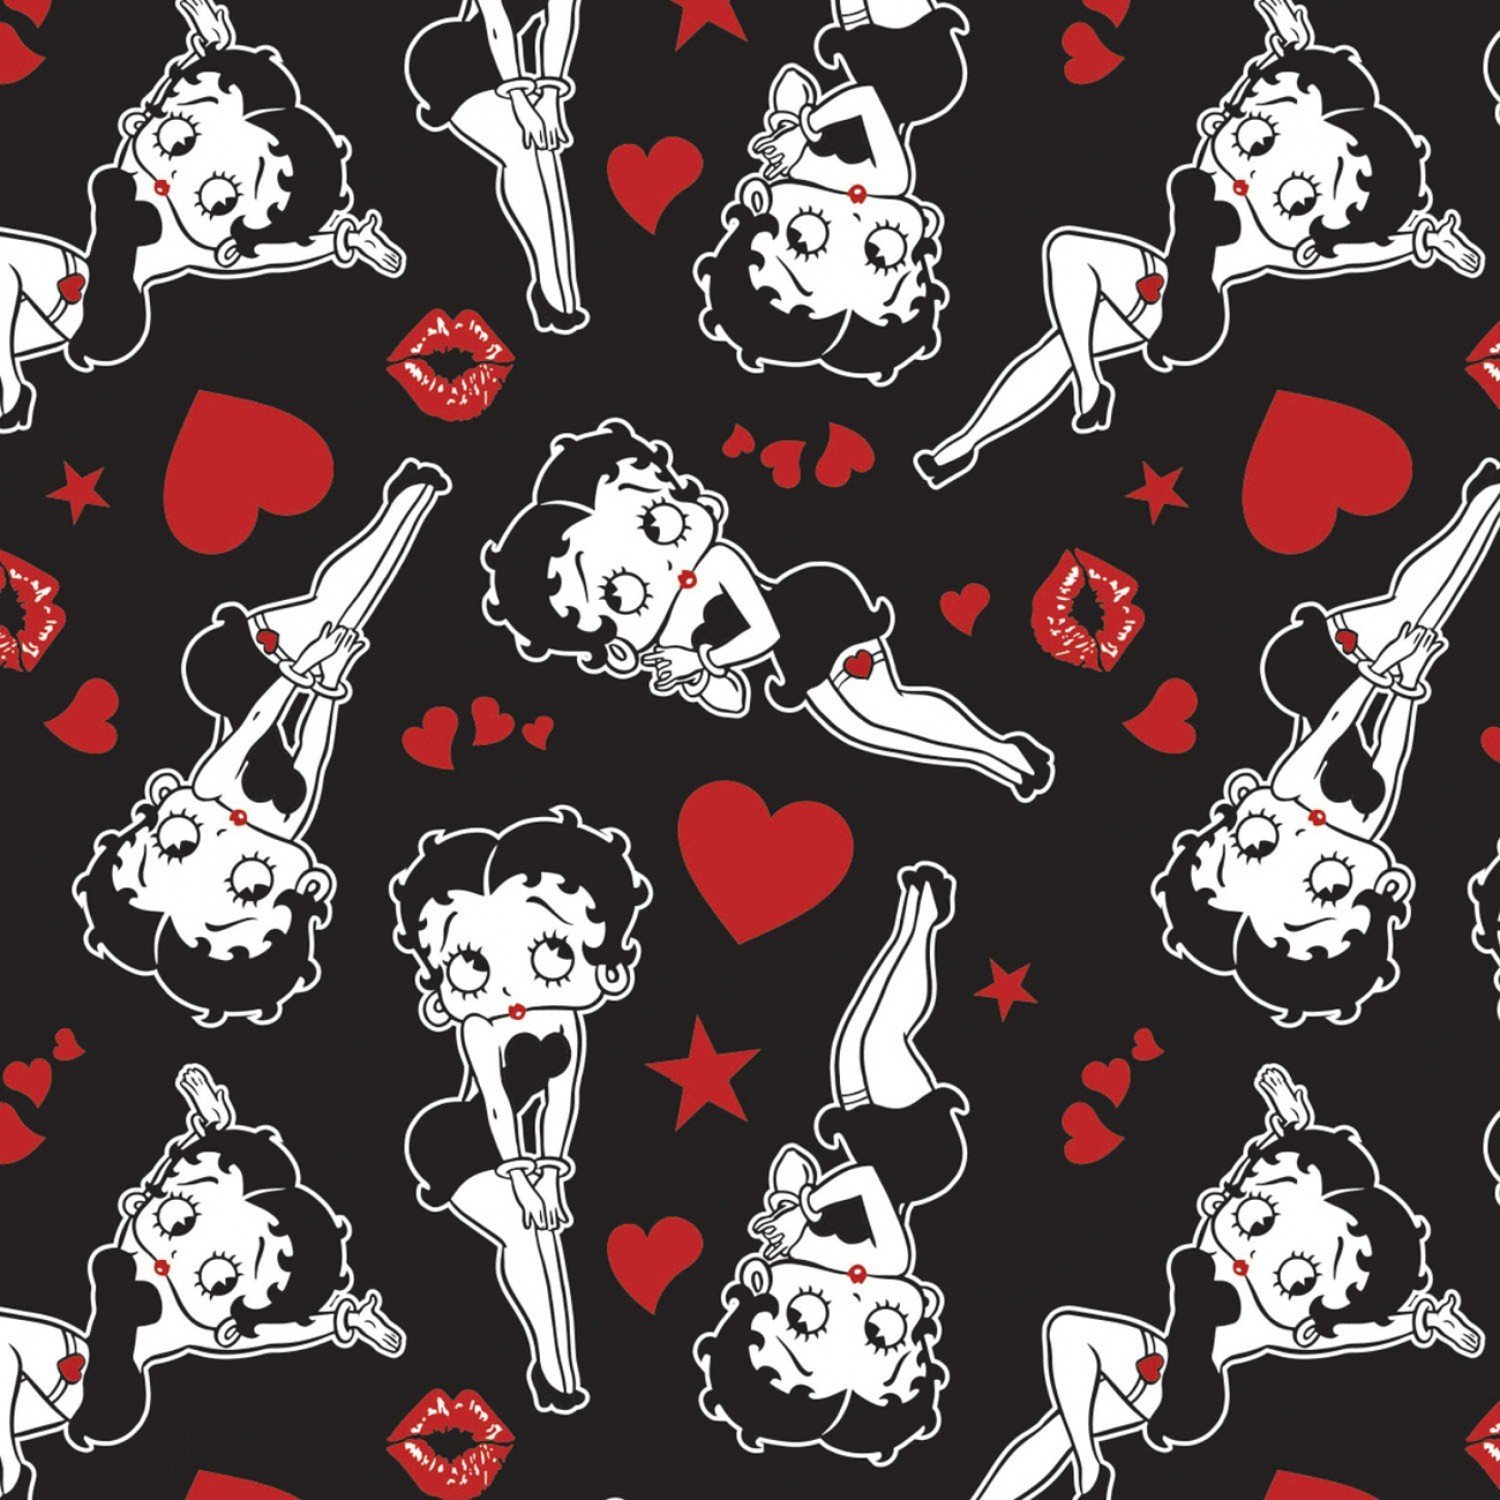 BETTY BOOP IN LOVE